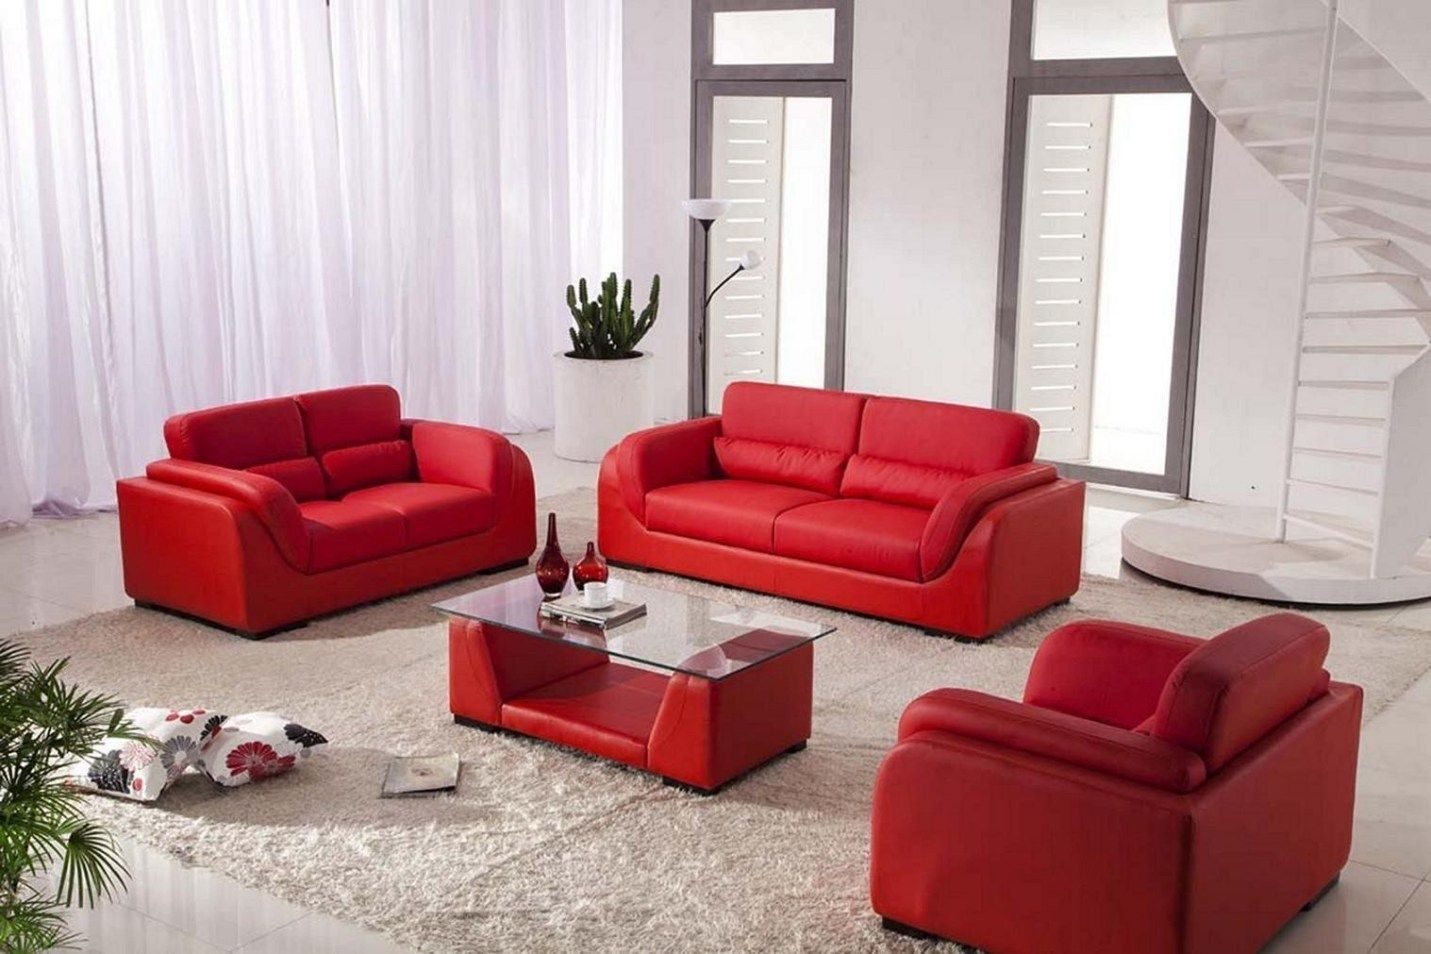 54 The Best Living Room Design Ideas For Your Home Decoration